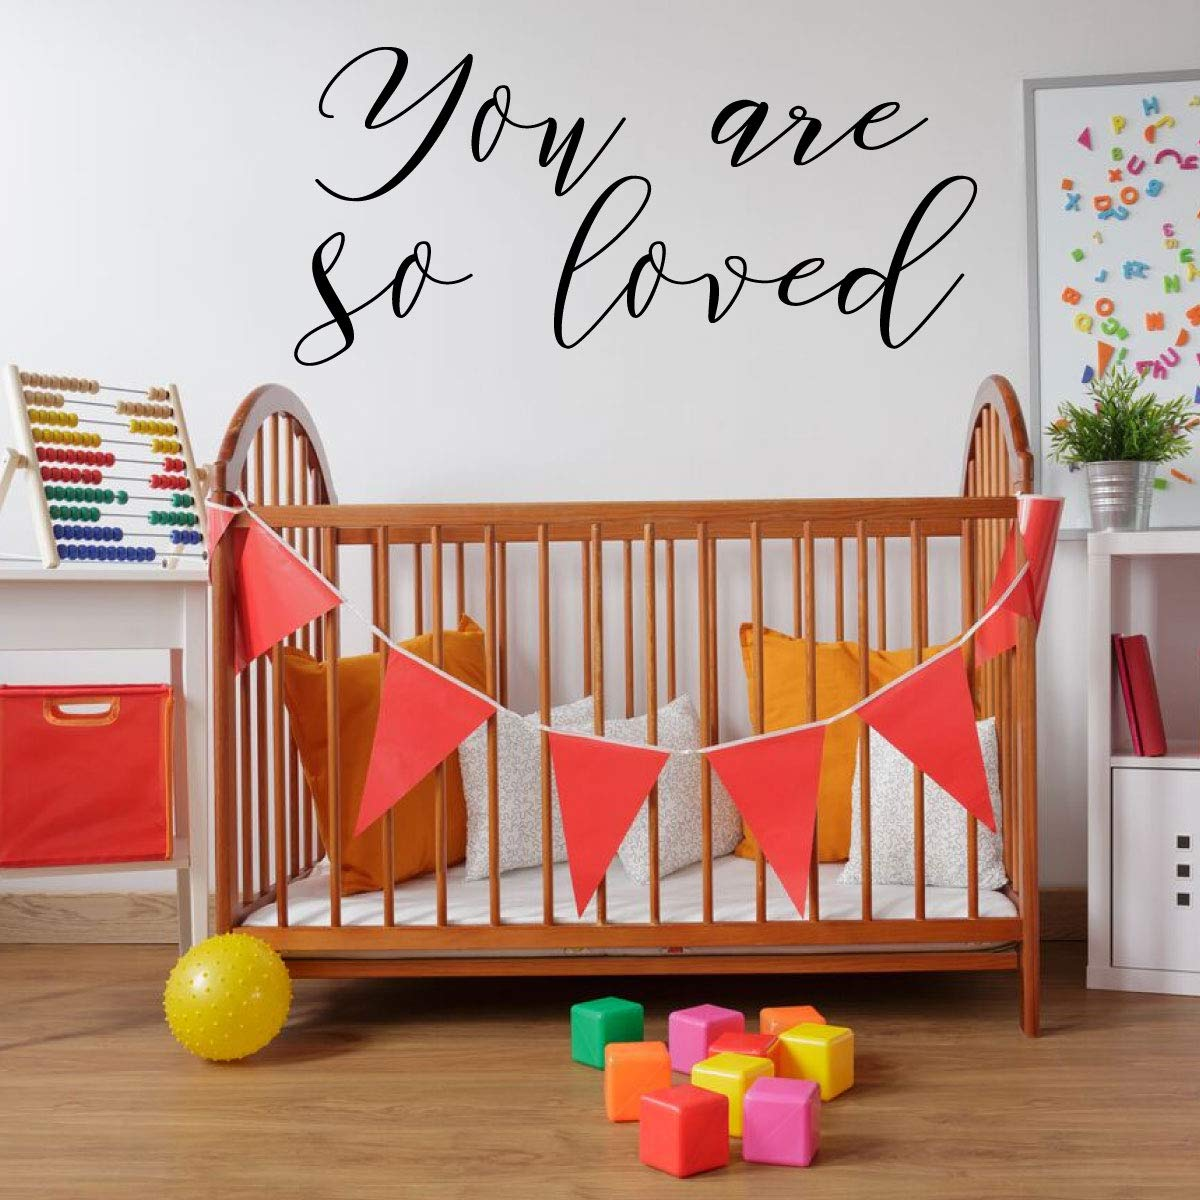 You Are Loved Quote Lettering Nursery Vinyl Decor Wall Decal